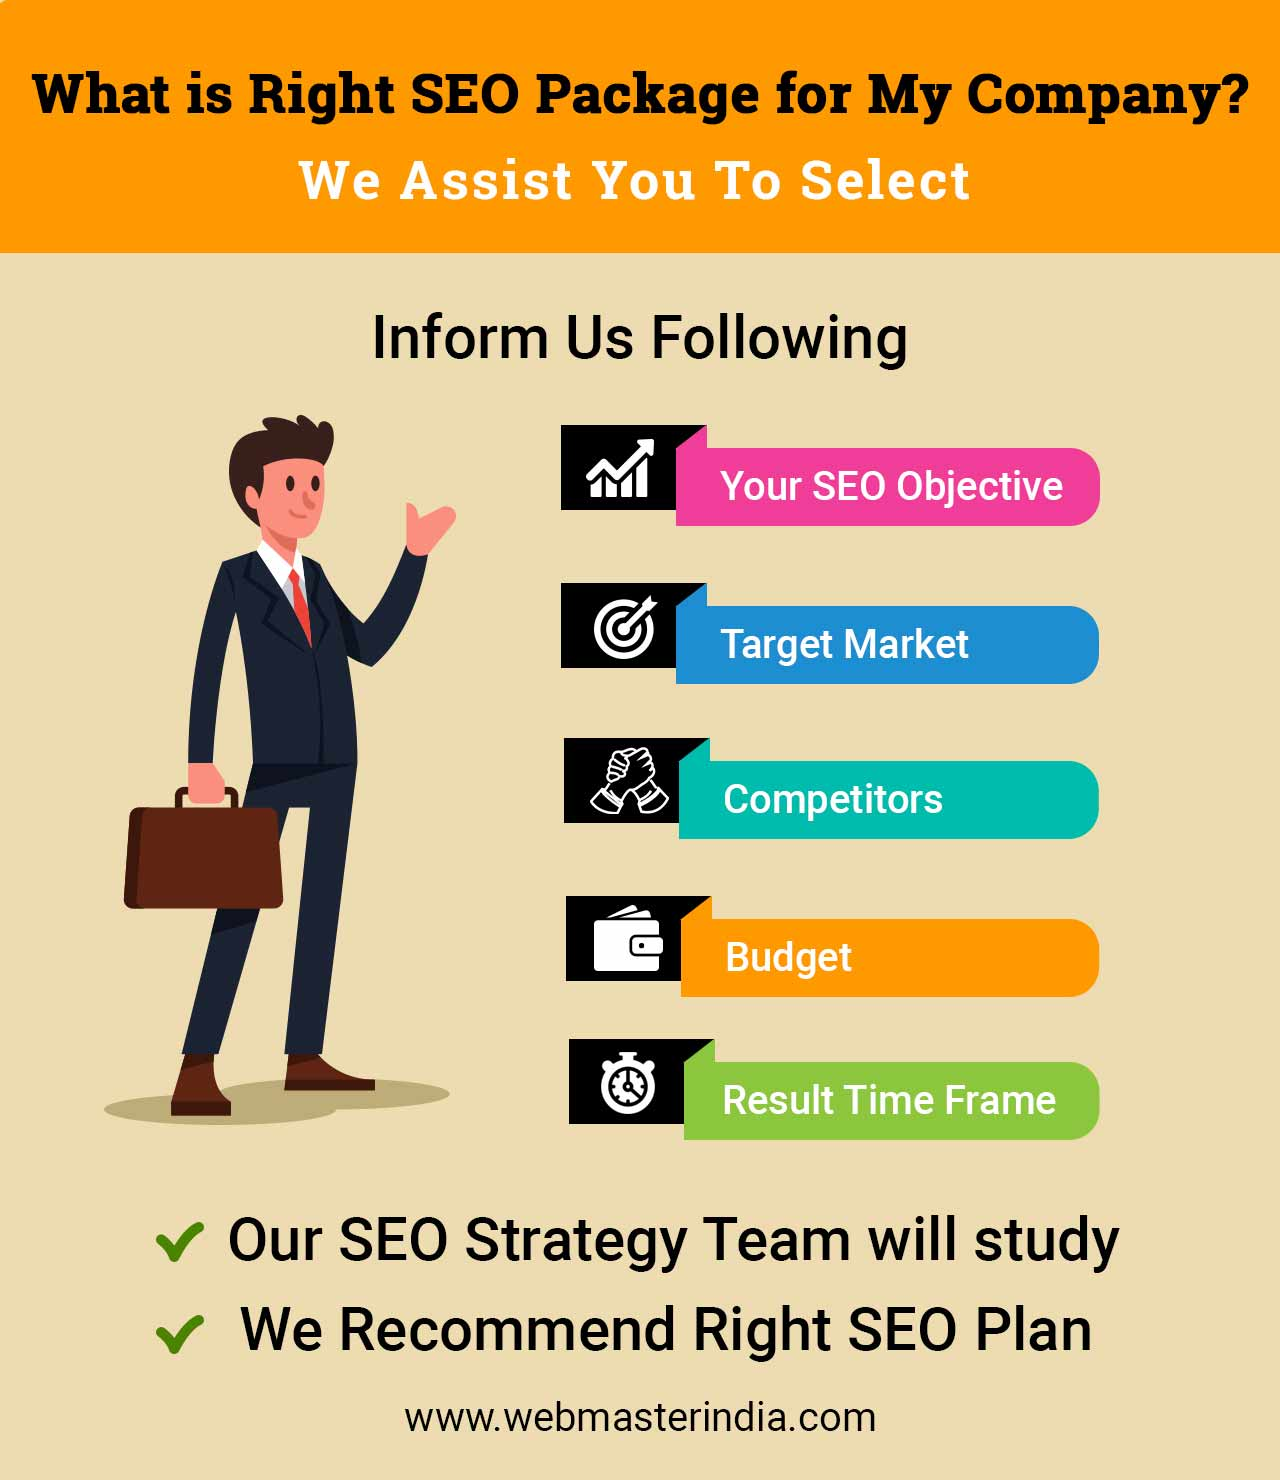 What is Right SEO Package for My Company?